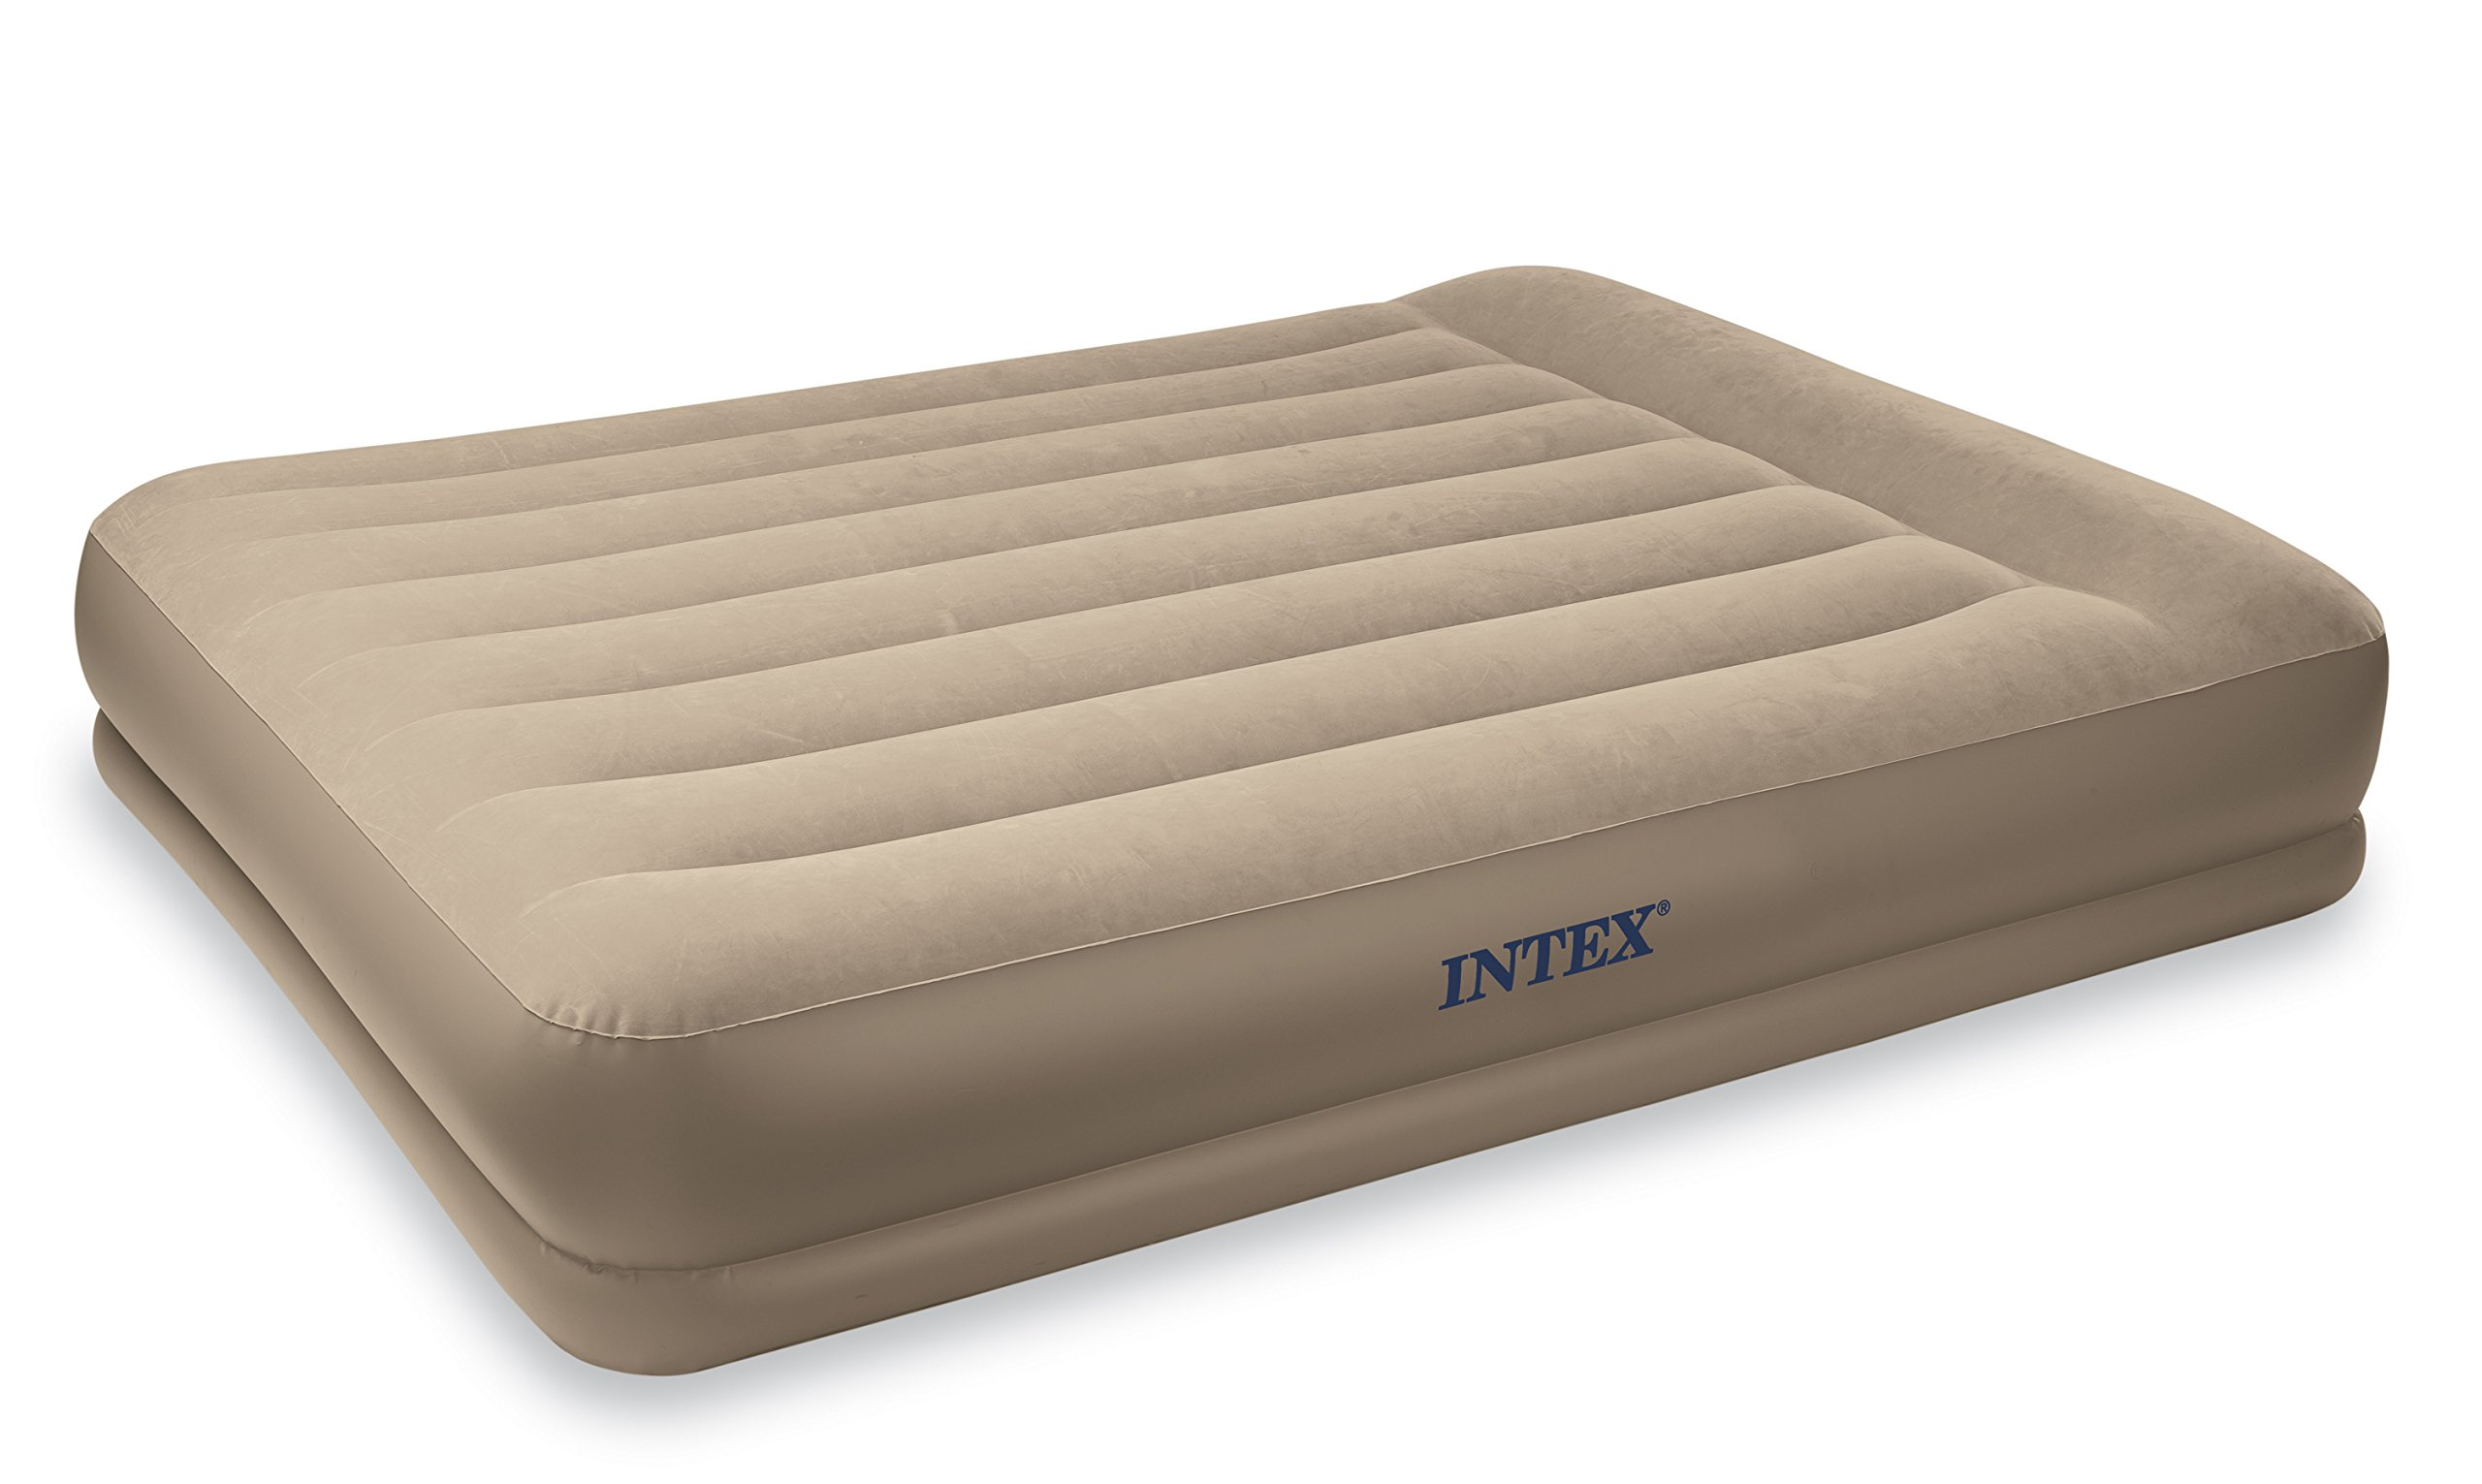 Intex Pillow Rest Mid-Rise Airbed with Built-in Pillow and Electric Pump, Queen, Bed Height 13 3/4''